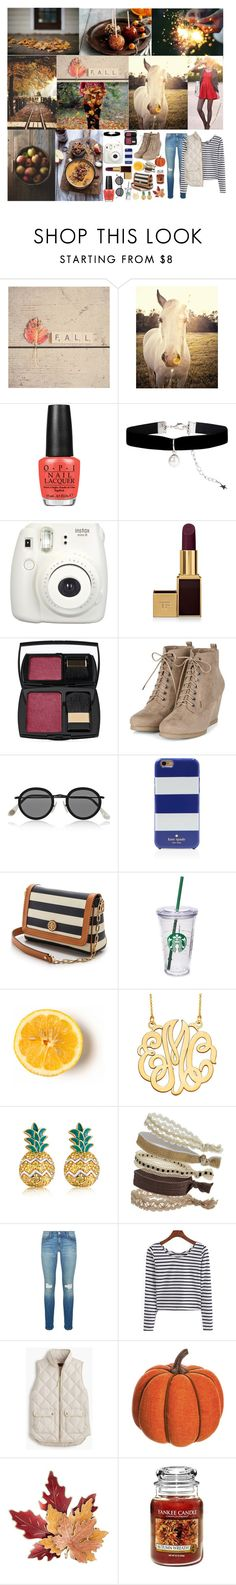 """Autumn Loving"" by wrigley67 ❤ liked on Polyvore featuring mode, Universal Lighting and Decor, OPI, Monsoon, Tom Ford, Lancôme, Acne Studios, Kate Spade, Tory Burch et Starbucks"